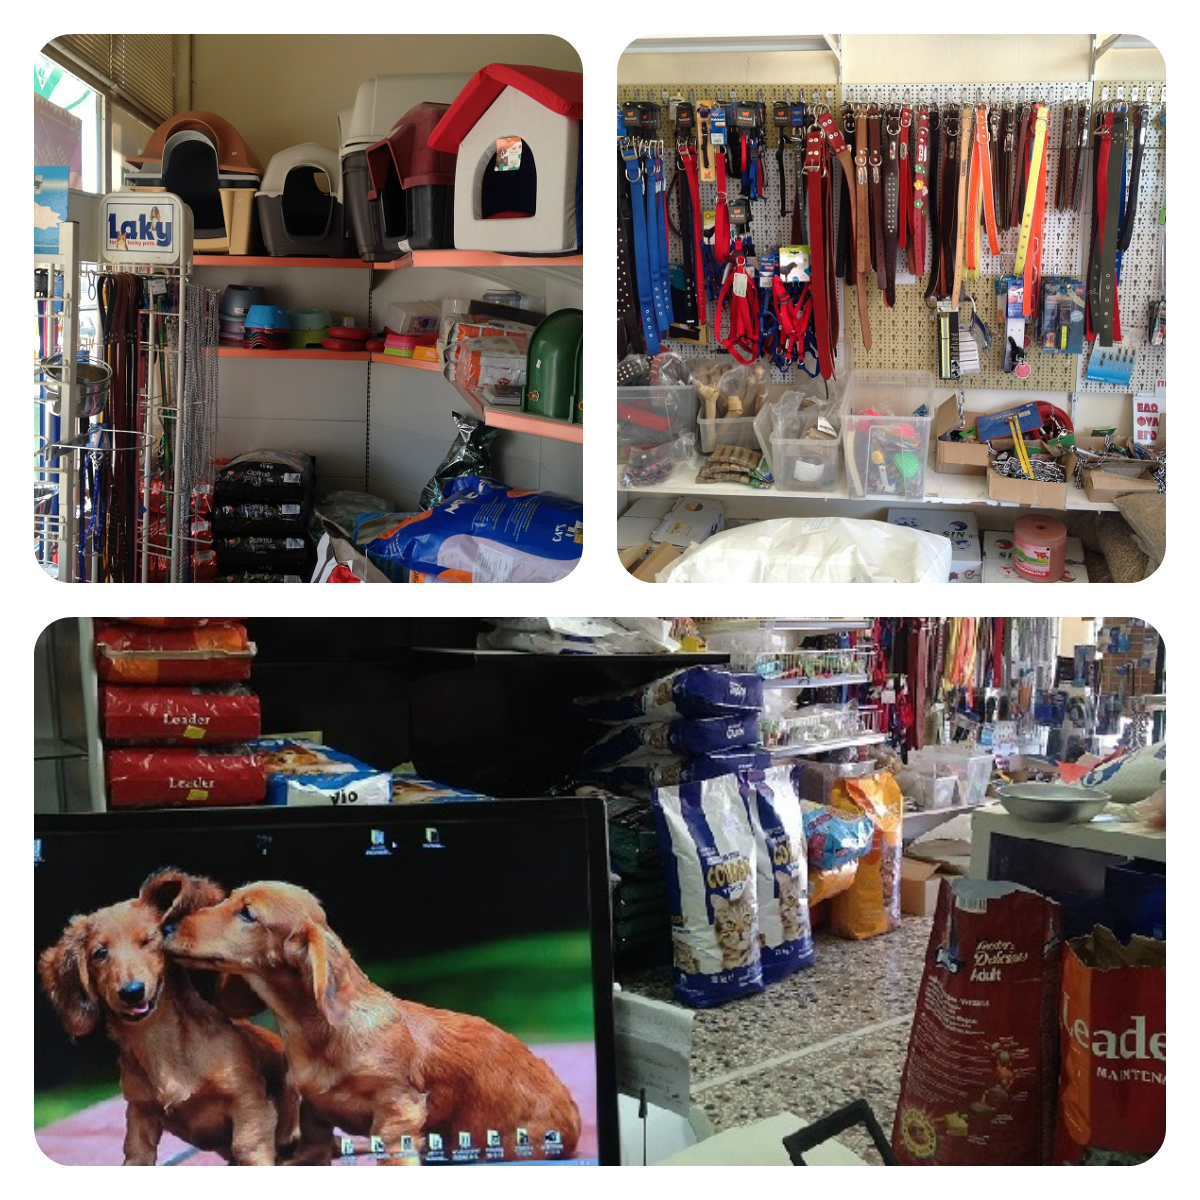 pet_shop_prosfores-koufalia-thessalonikis-konstantinidis-antonis-collage-2.jpg